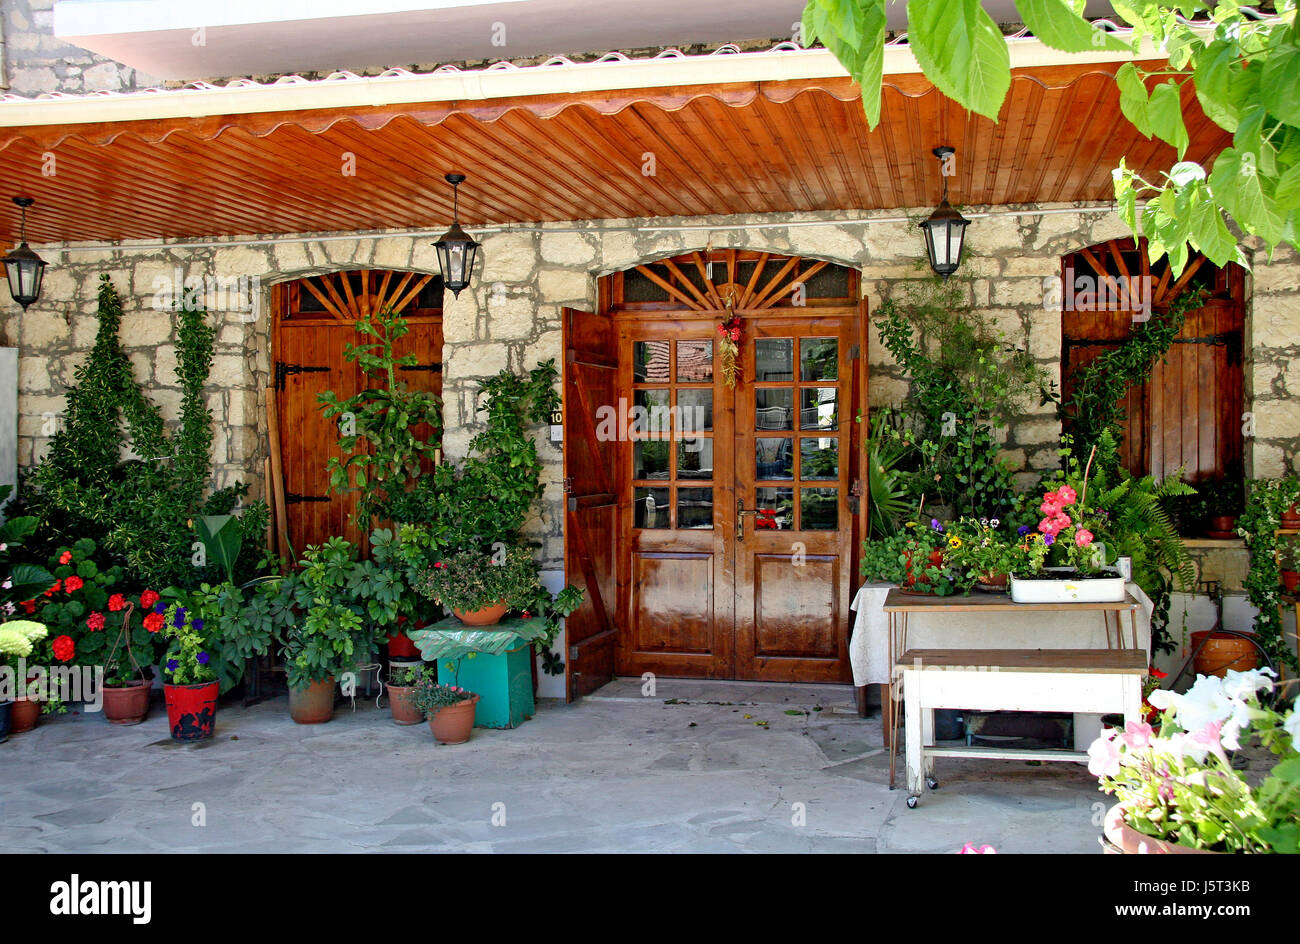 tavern shops stock photos u0026 tavern shops stock images alamy